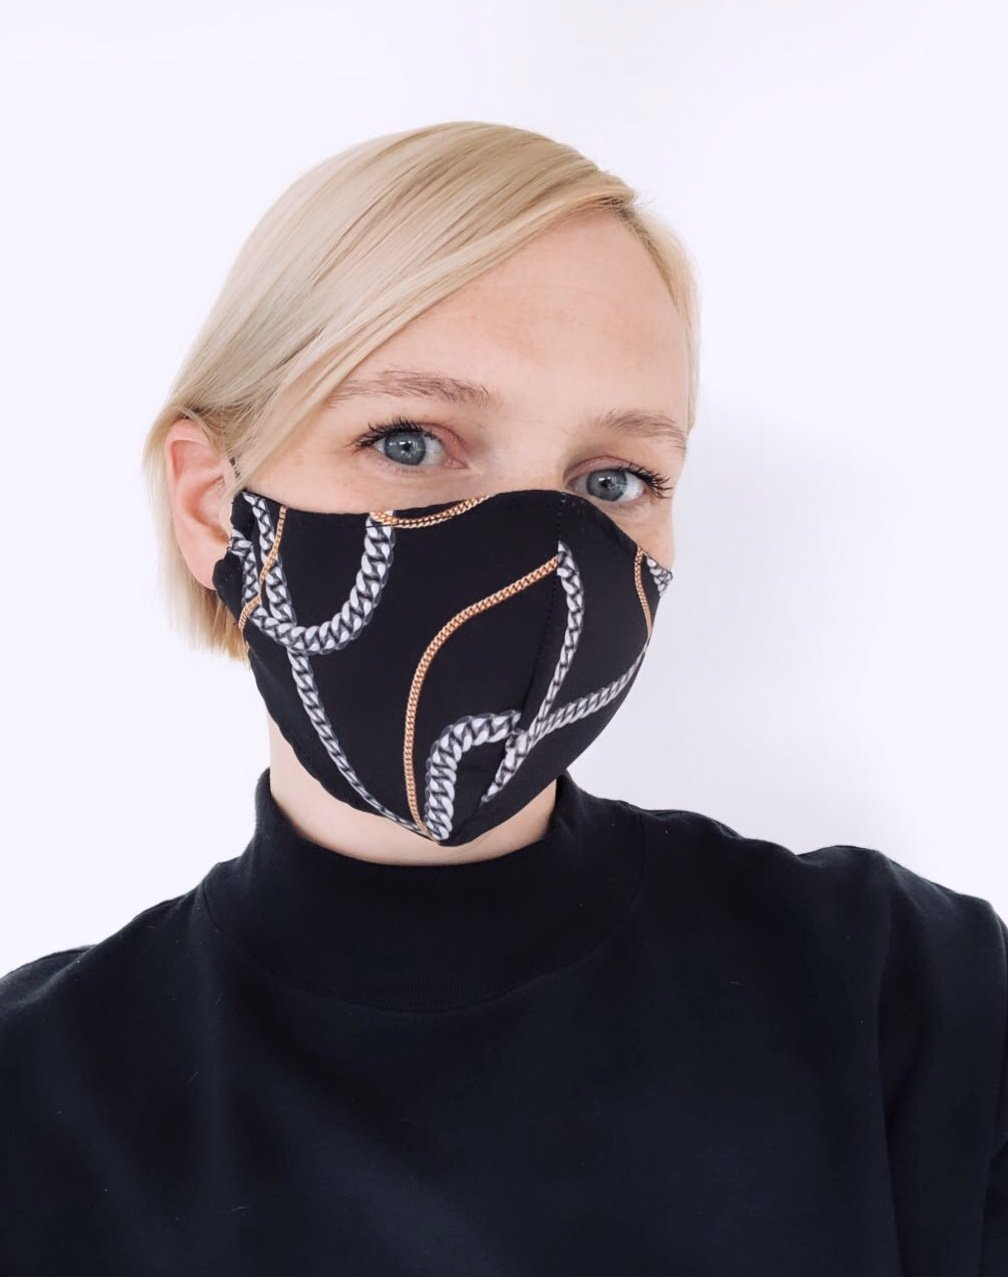 CUSTOM FACE MASK COVERING - CHAIN PRINT